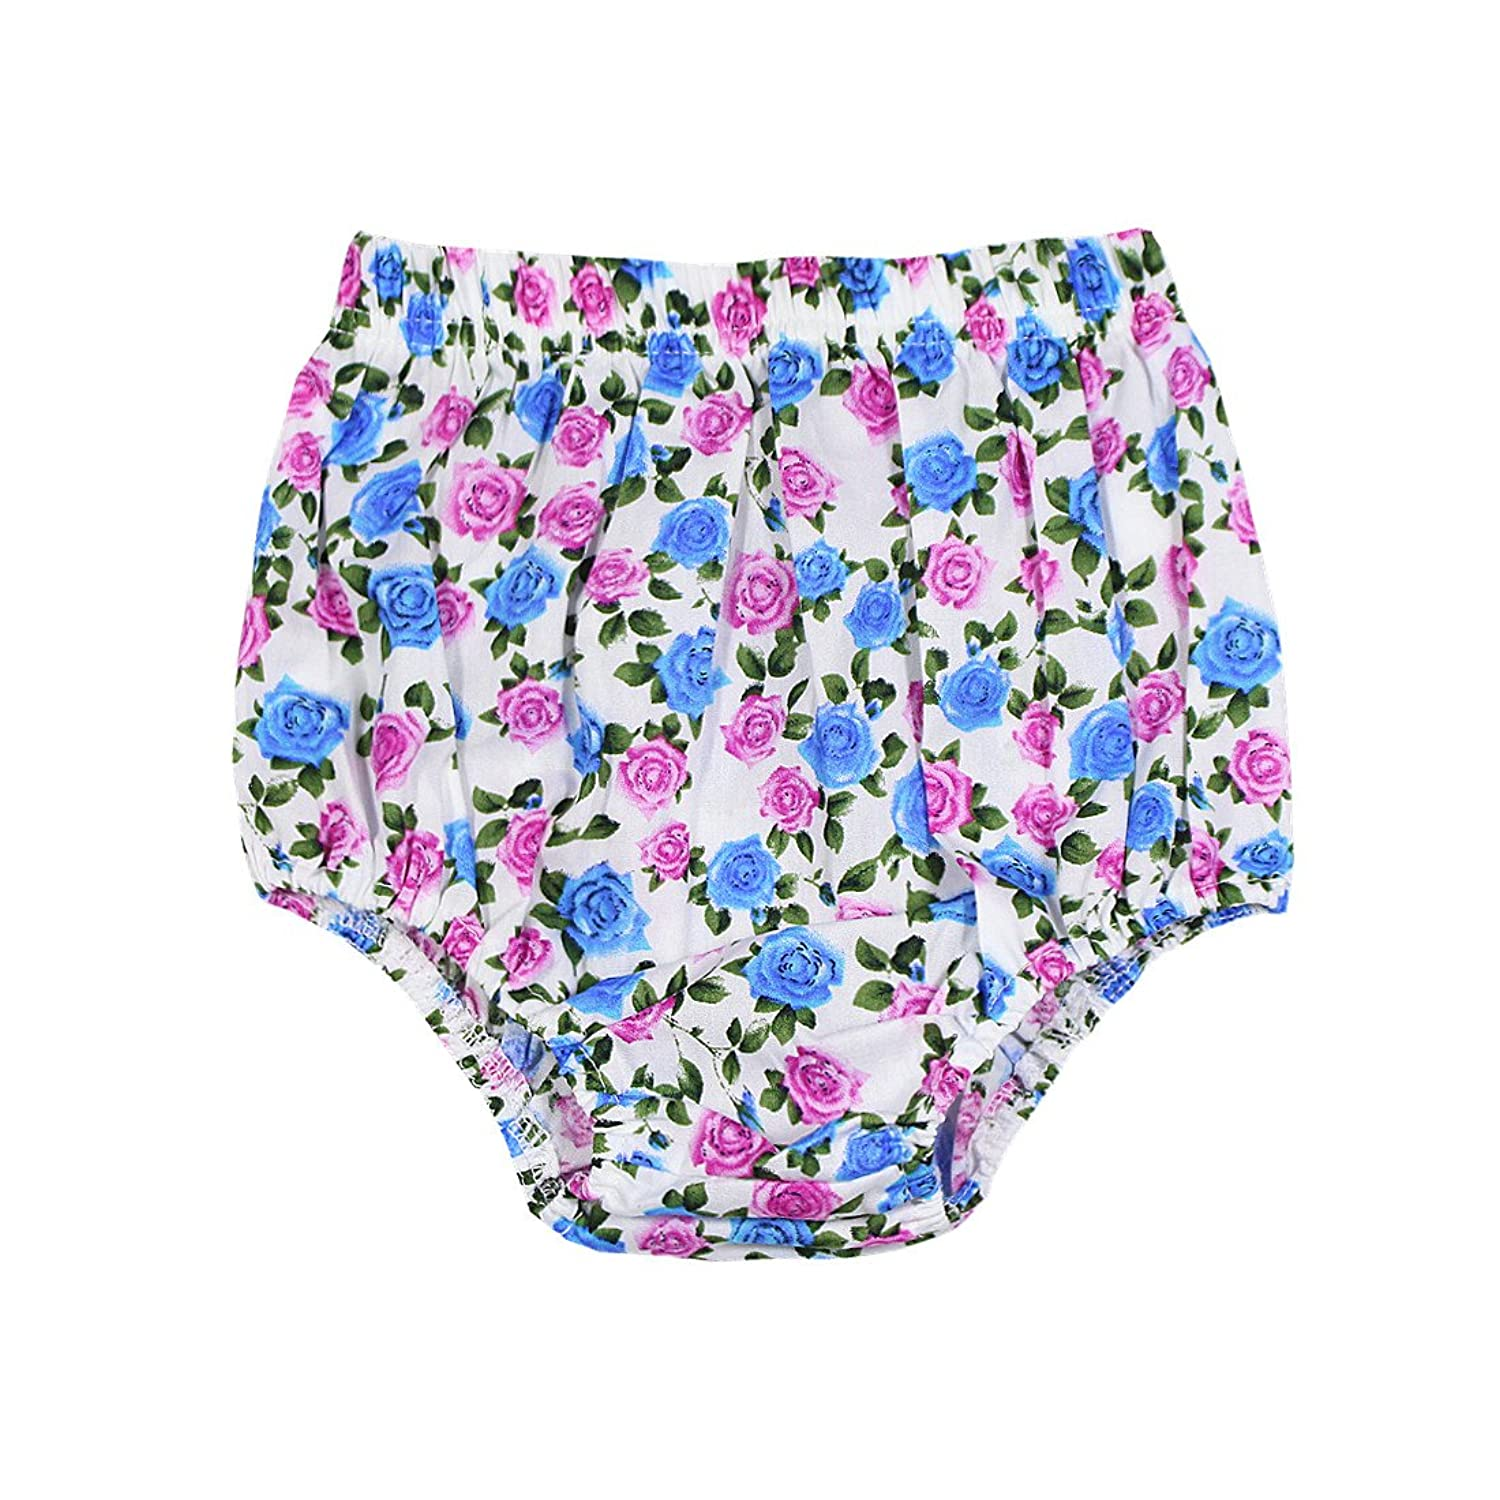 Peony Baby Baby Girl Bloomers Pantie 3m-24m Organic Diaper Cover